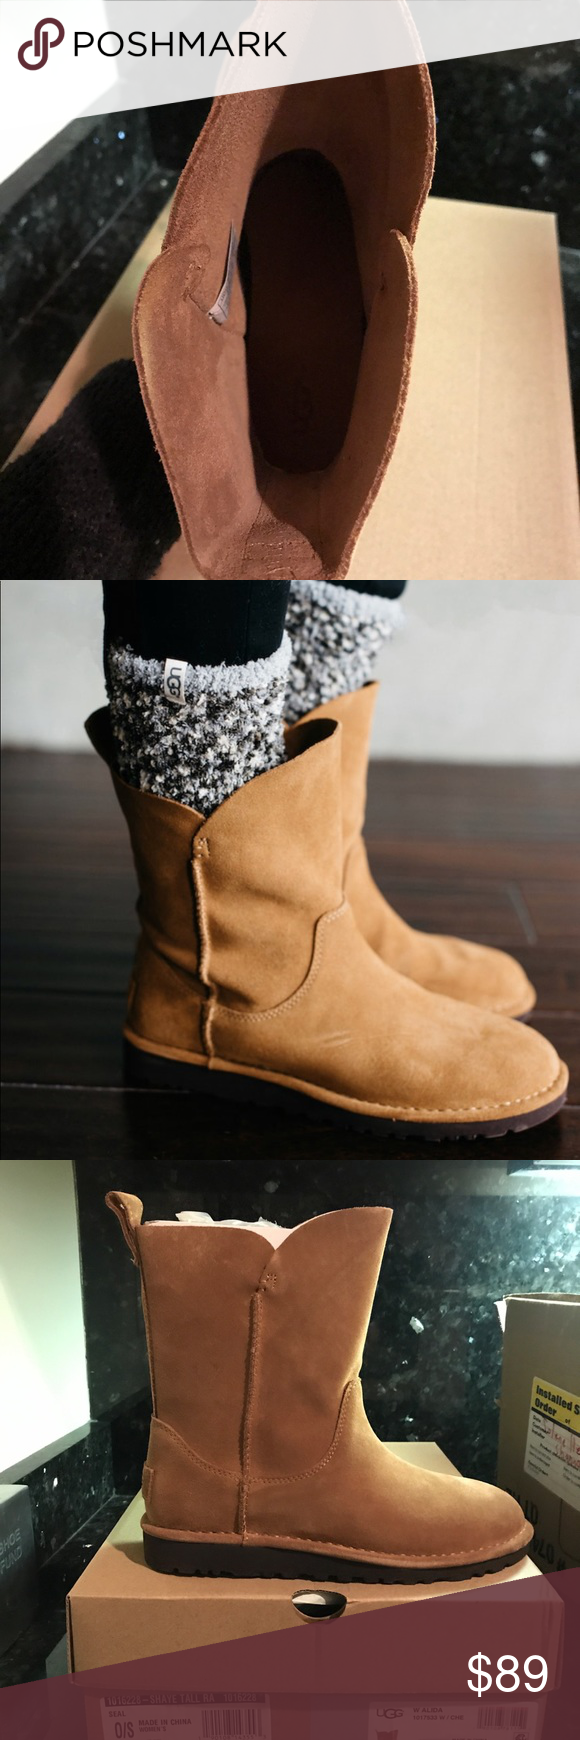 5a192c42c80 Ugg Alida boots; size 7 Perfect for sock lovers! Traditional Uggs ...